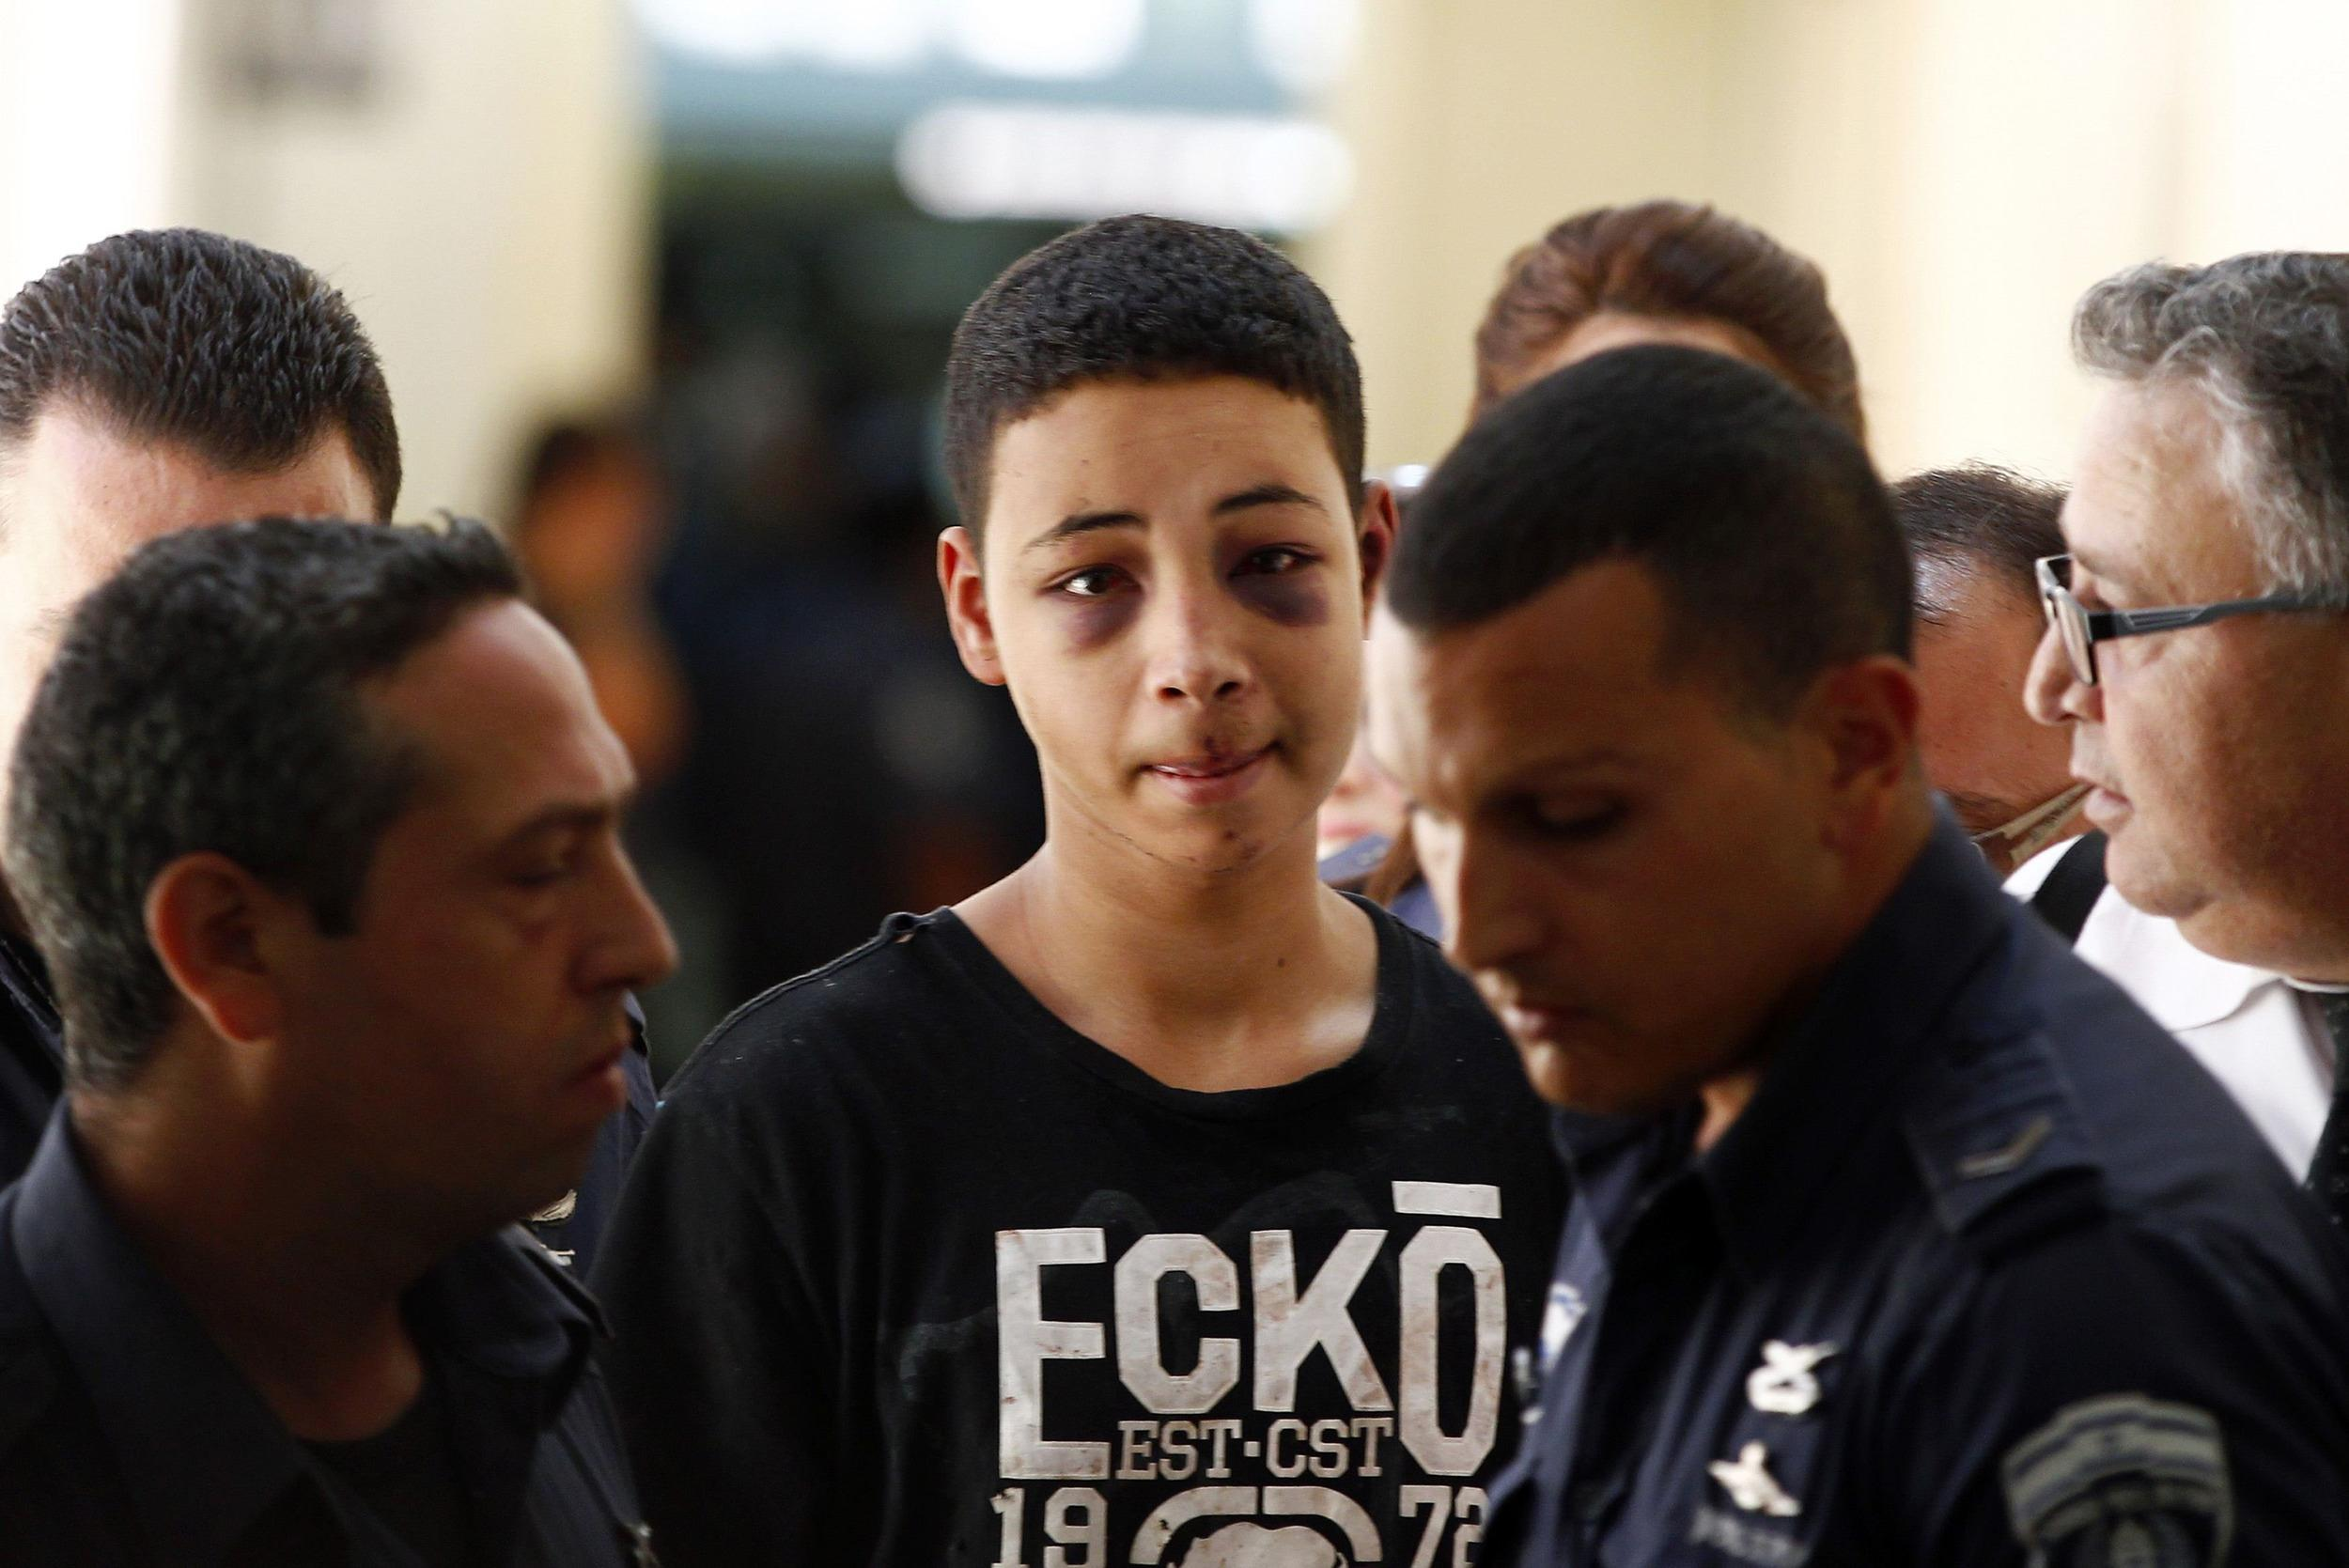 Image: Tariq Khdeir, an American of Palestinian descent, is escorted by Israeli prison guards during an appearance at Jerusalem magistrate's court